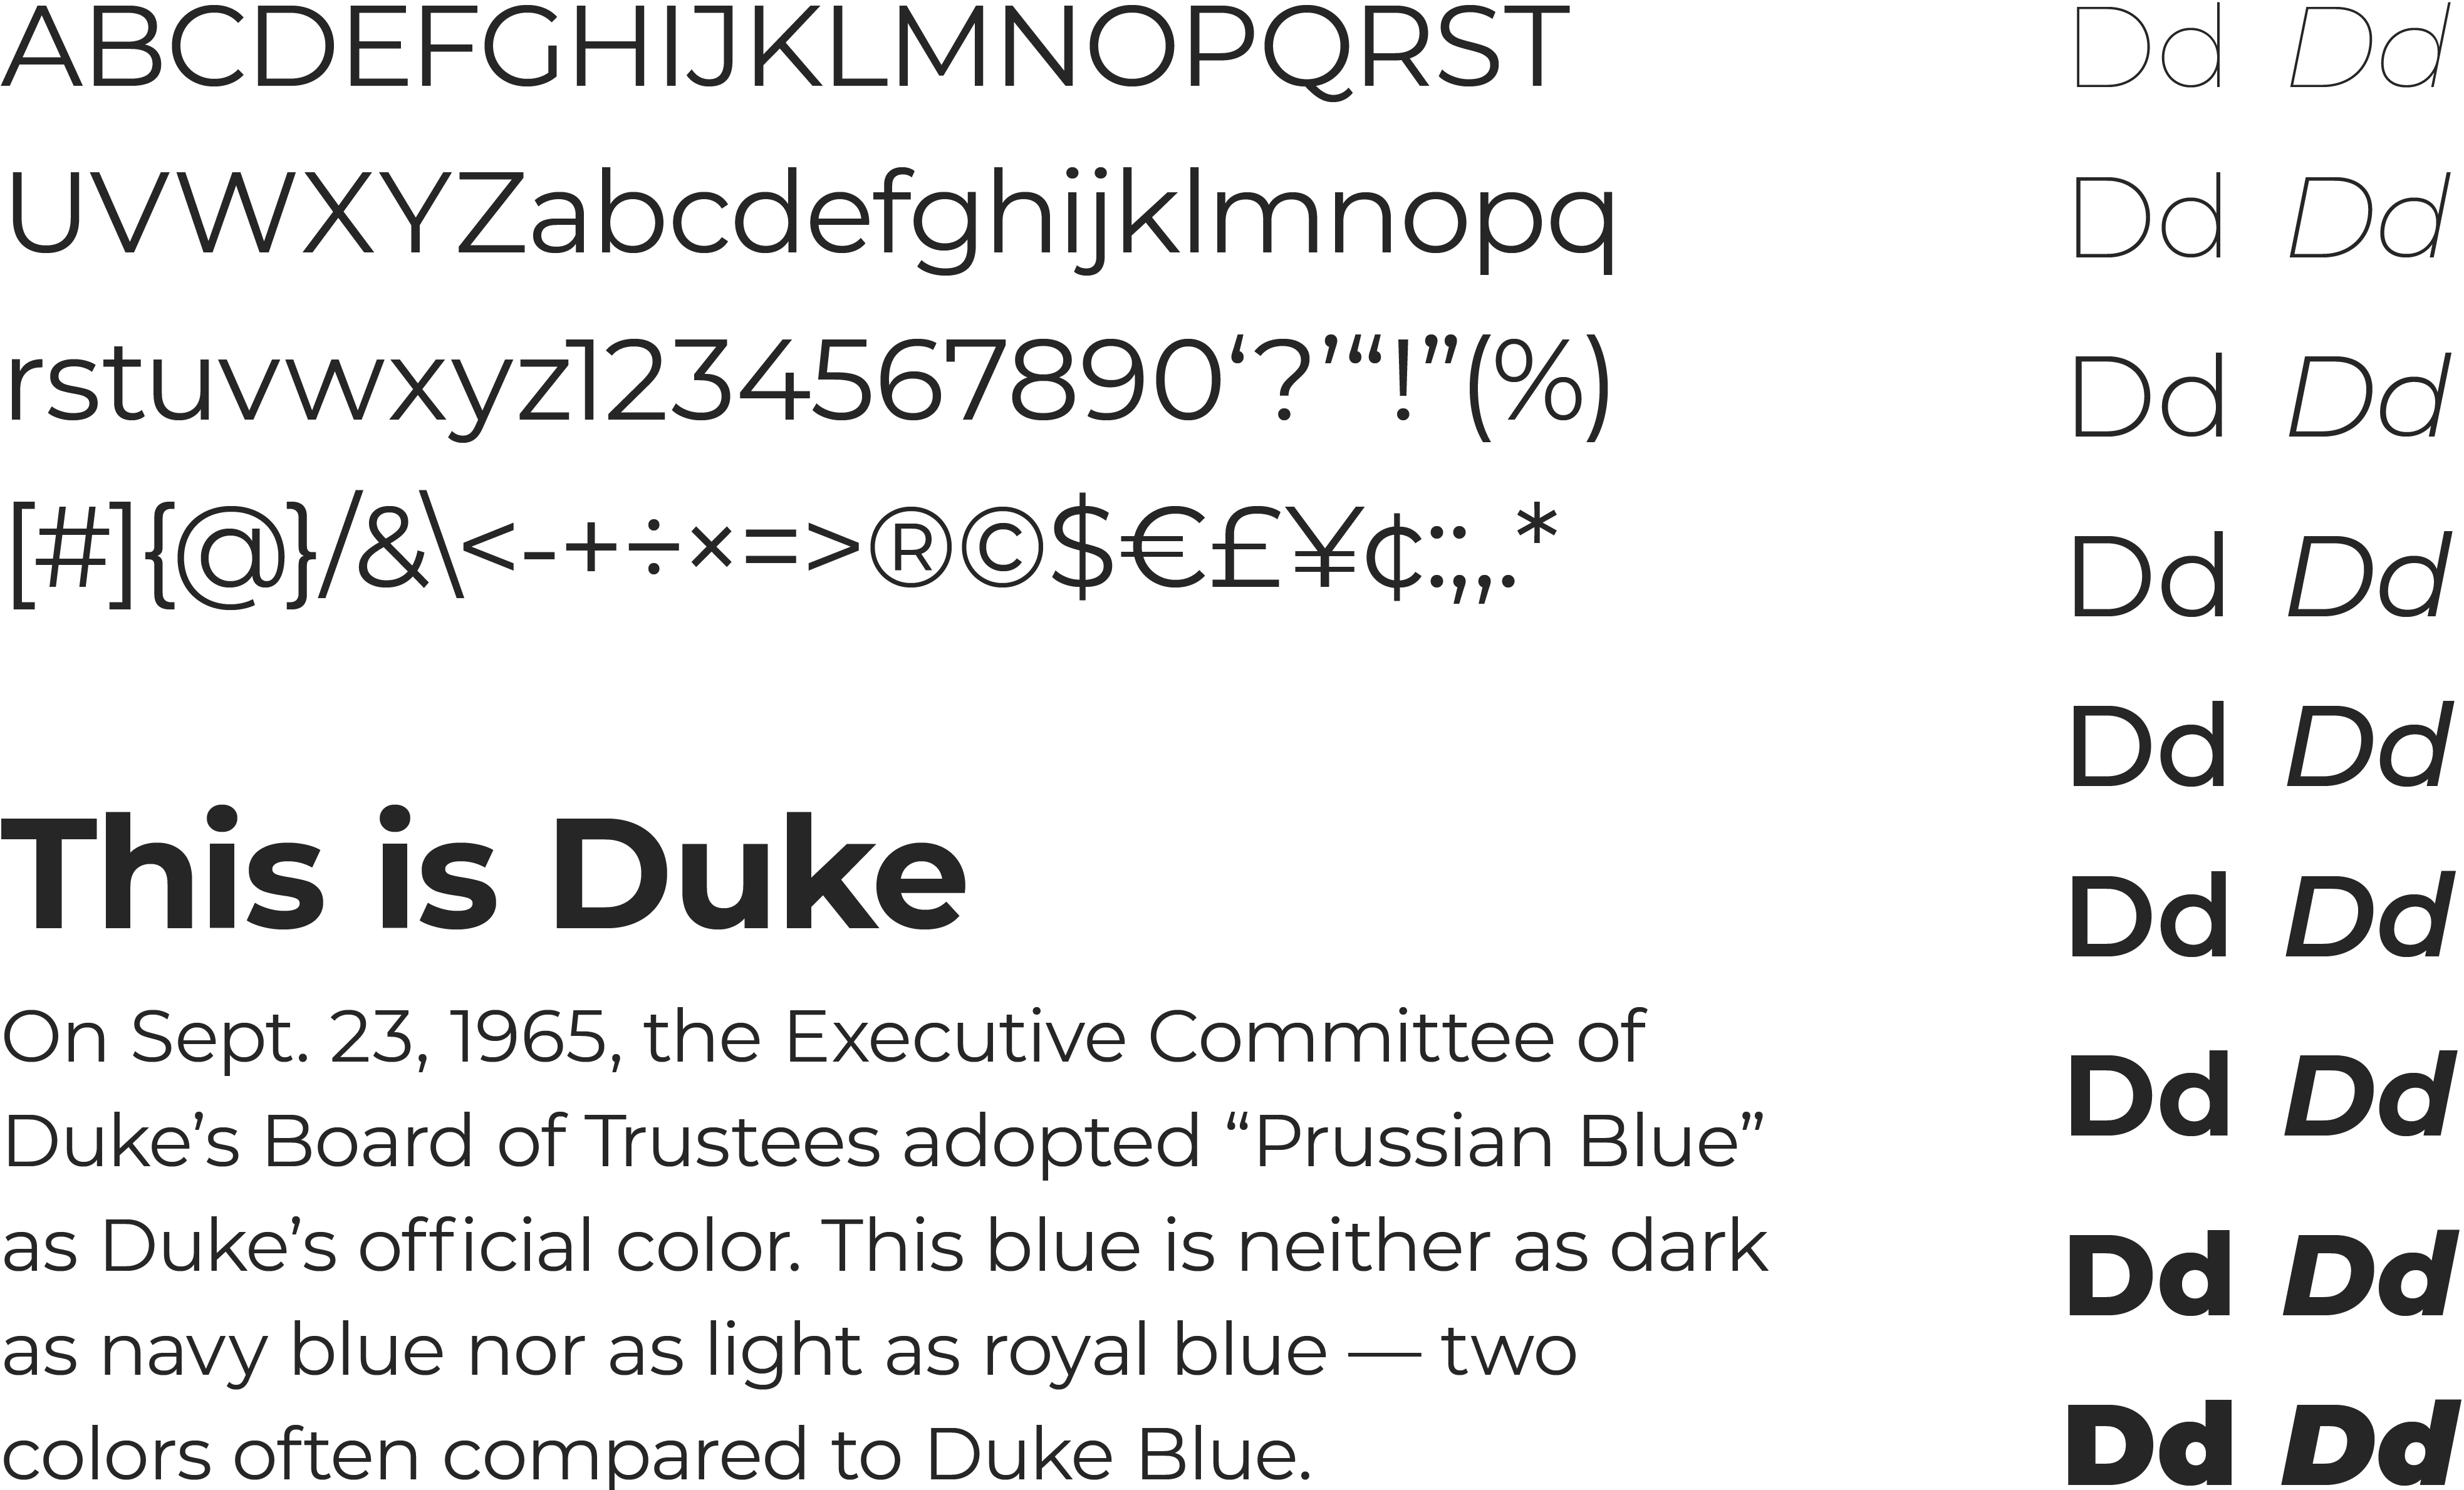 A specimen of the Montserrat, a sans-serif typeface. Included are a list of English characters, the font weights & styles and a sample paragraph of text rendered in the typeface.